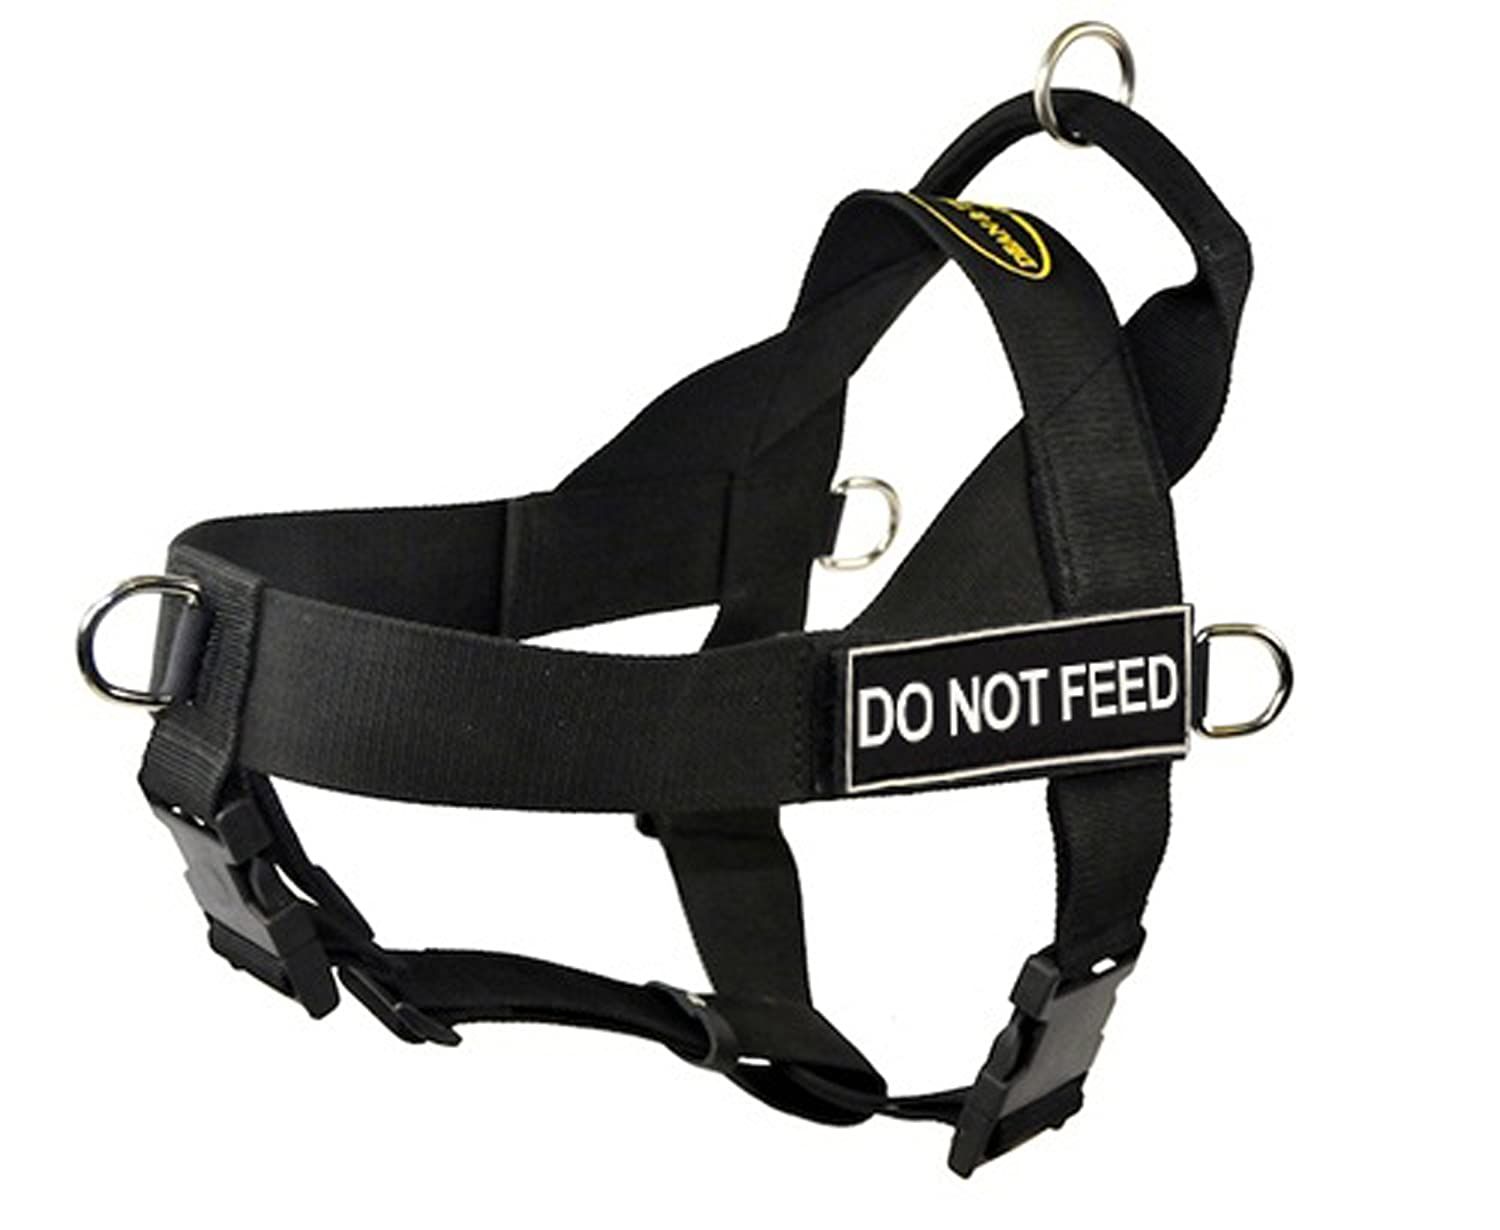 Dean & Tyler Universal No Pull Dog Harness, Do not Feed, Large, Fits Girth Size  31-Inch to 42-Inch, Black